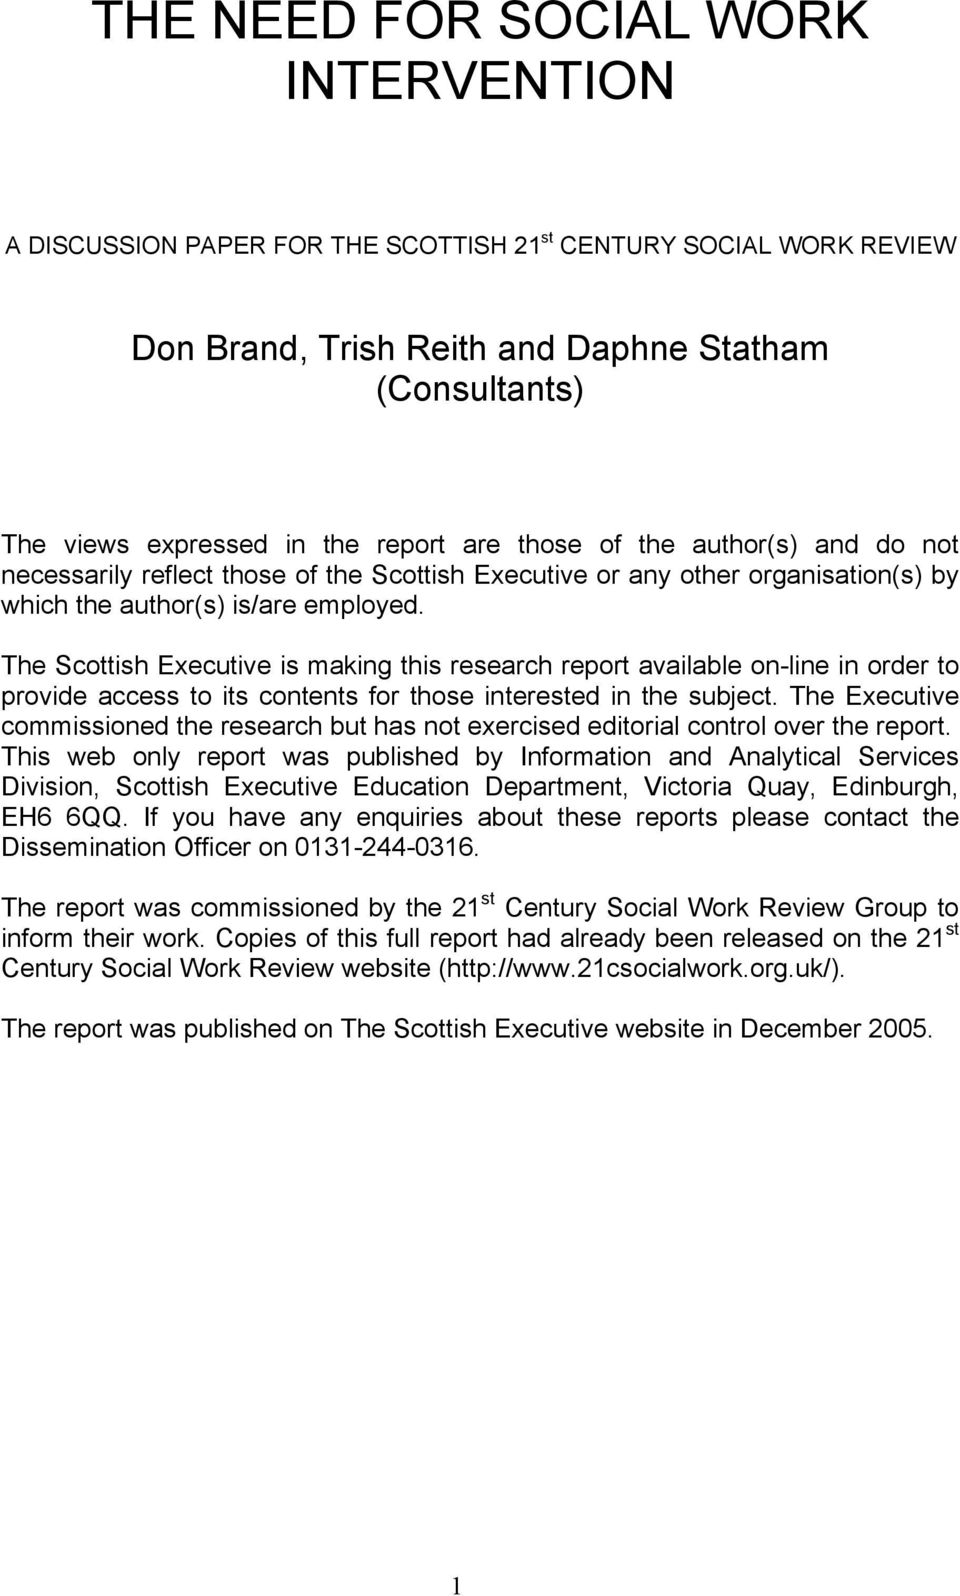 The Scottish Executive is making this research report available on-line in order to provide access to its contents for those interested in the subject.